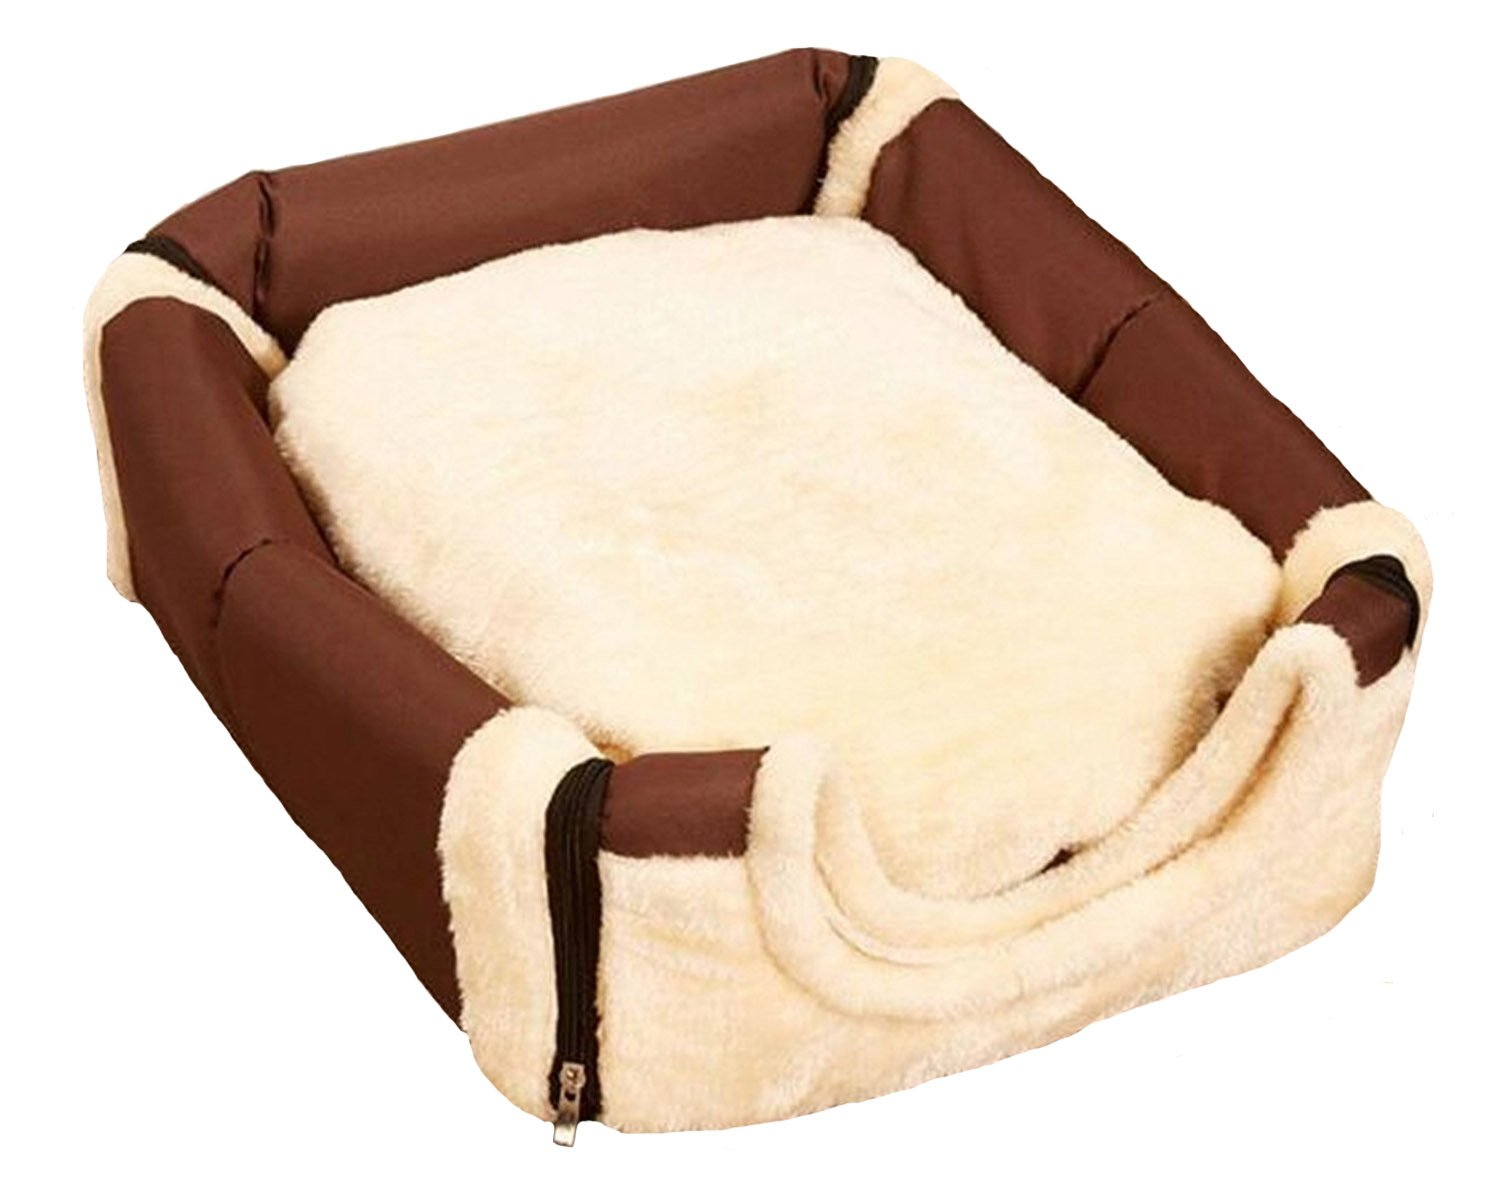 M G House Cozy Pet Dog Cat Cave, Portable Arch House Soft Sided Plush Pillowed Indoor Puppy Convertible Pet Bed